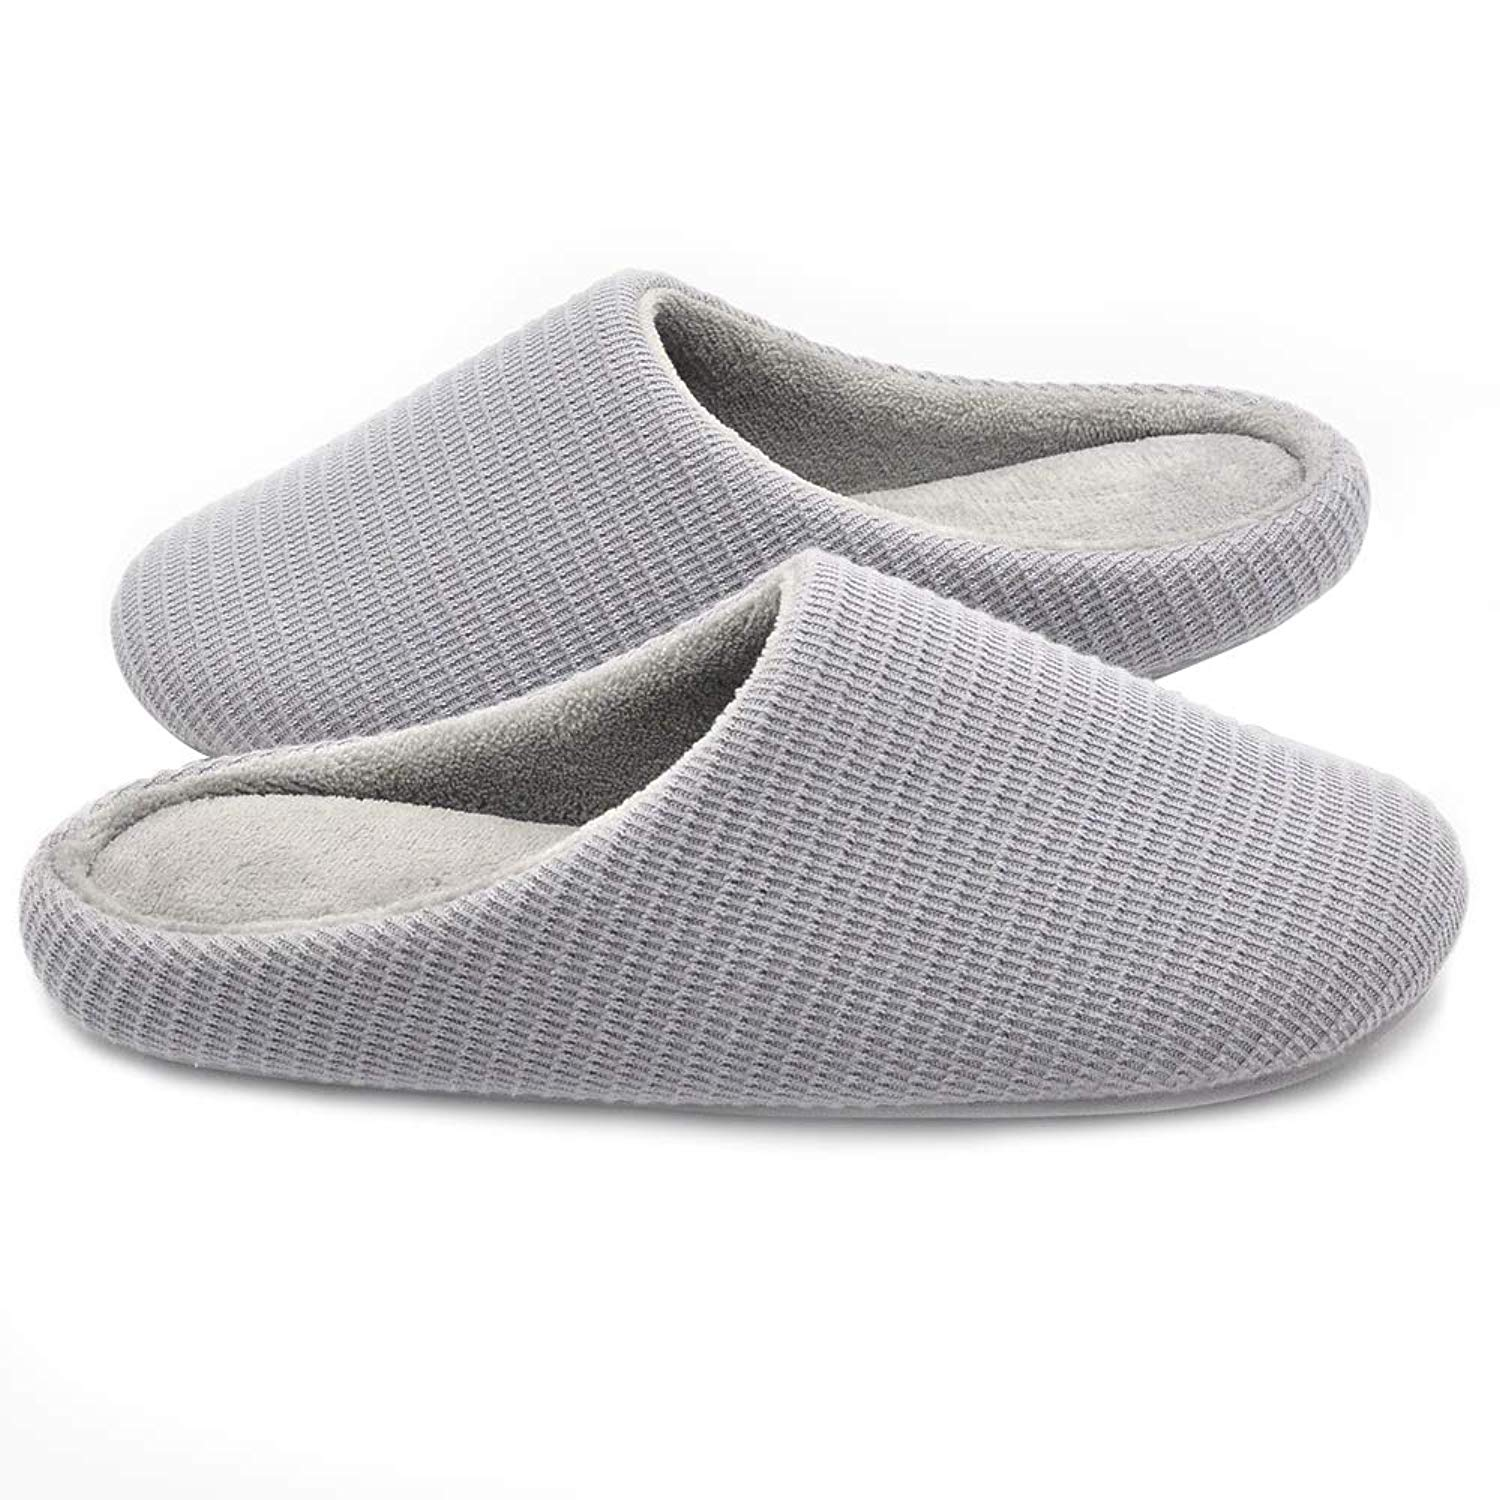 91351e4503f3 Get Quotations · Wishcotton Men s   Women s Memory Foam Slippers Washable  House Shoes ...